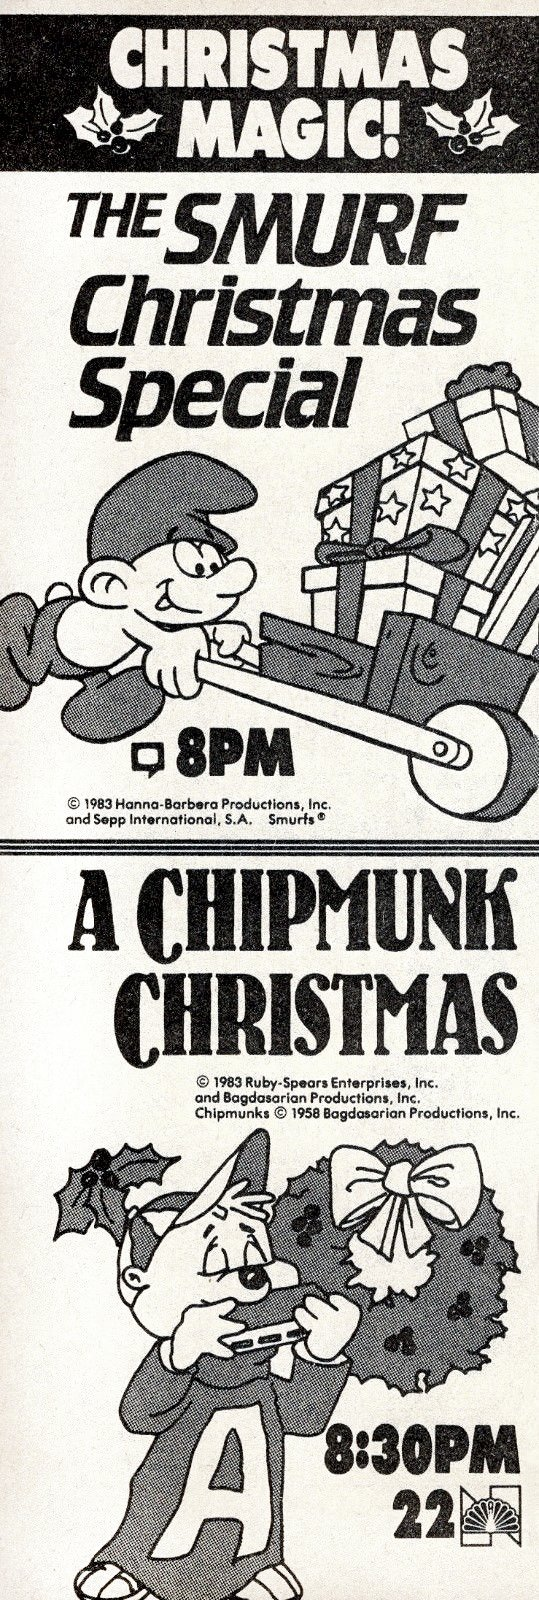 Smurf and Chipmunk Christmas specials from 1983